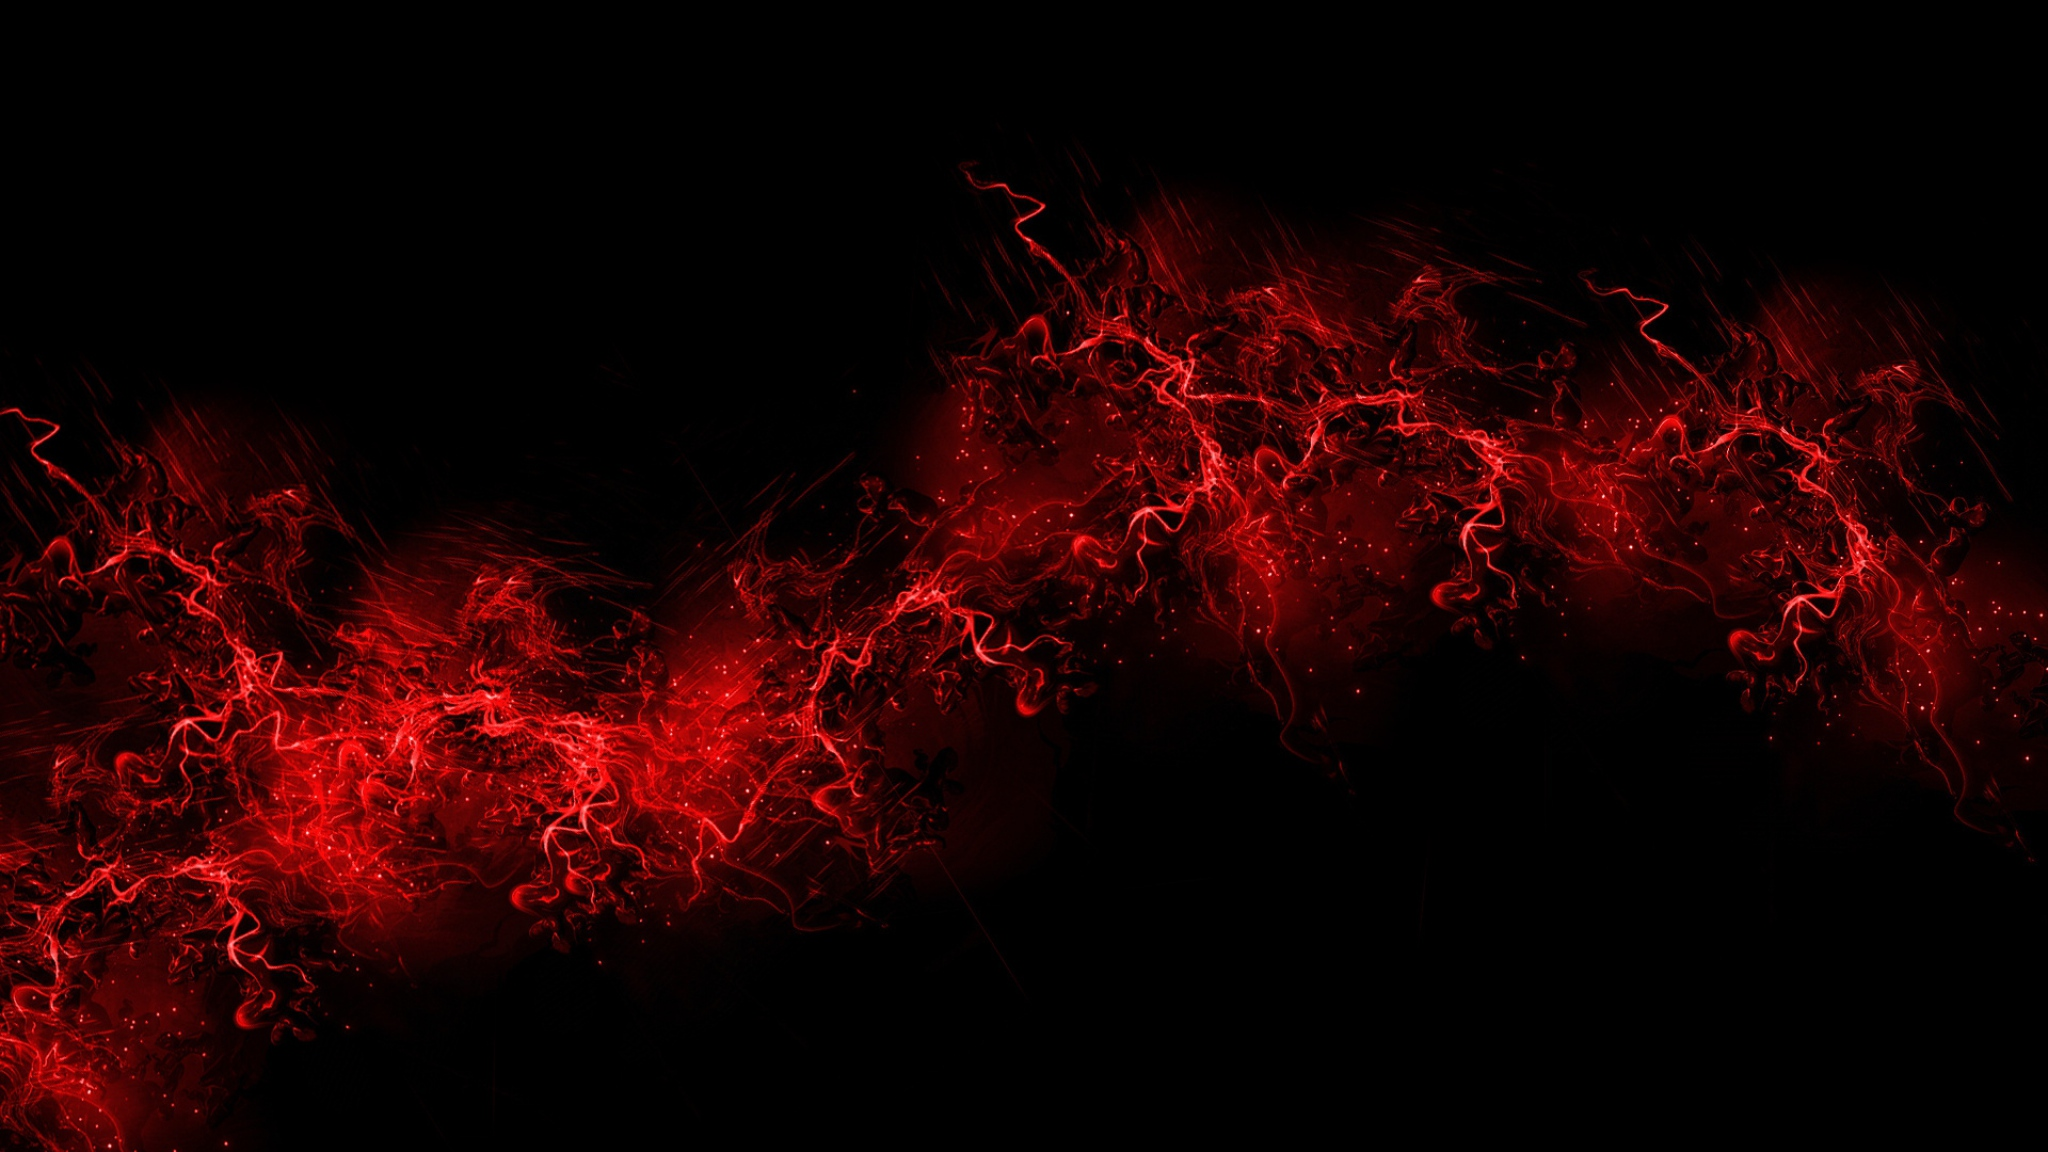 2048x1152 Wallpaper black background red color paint explosion 2048x1152